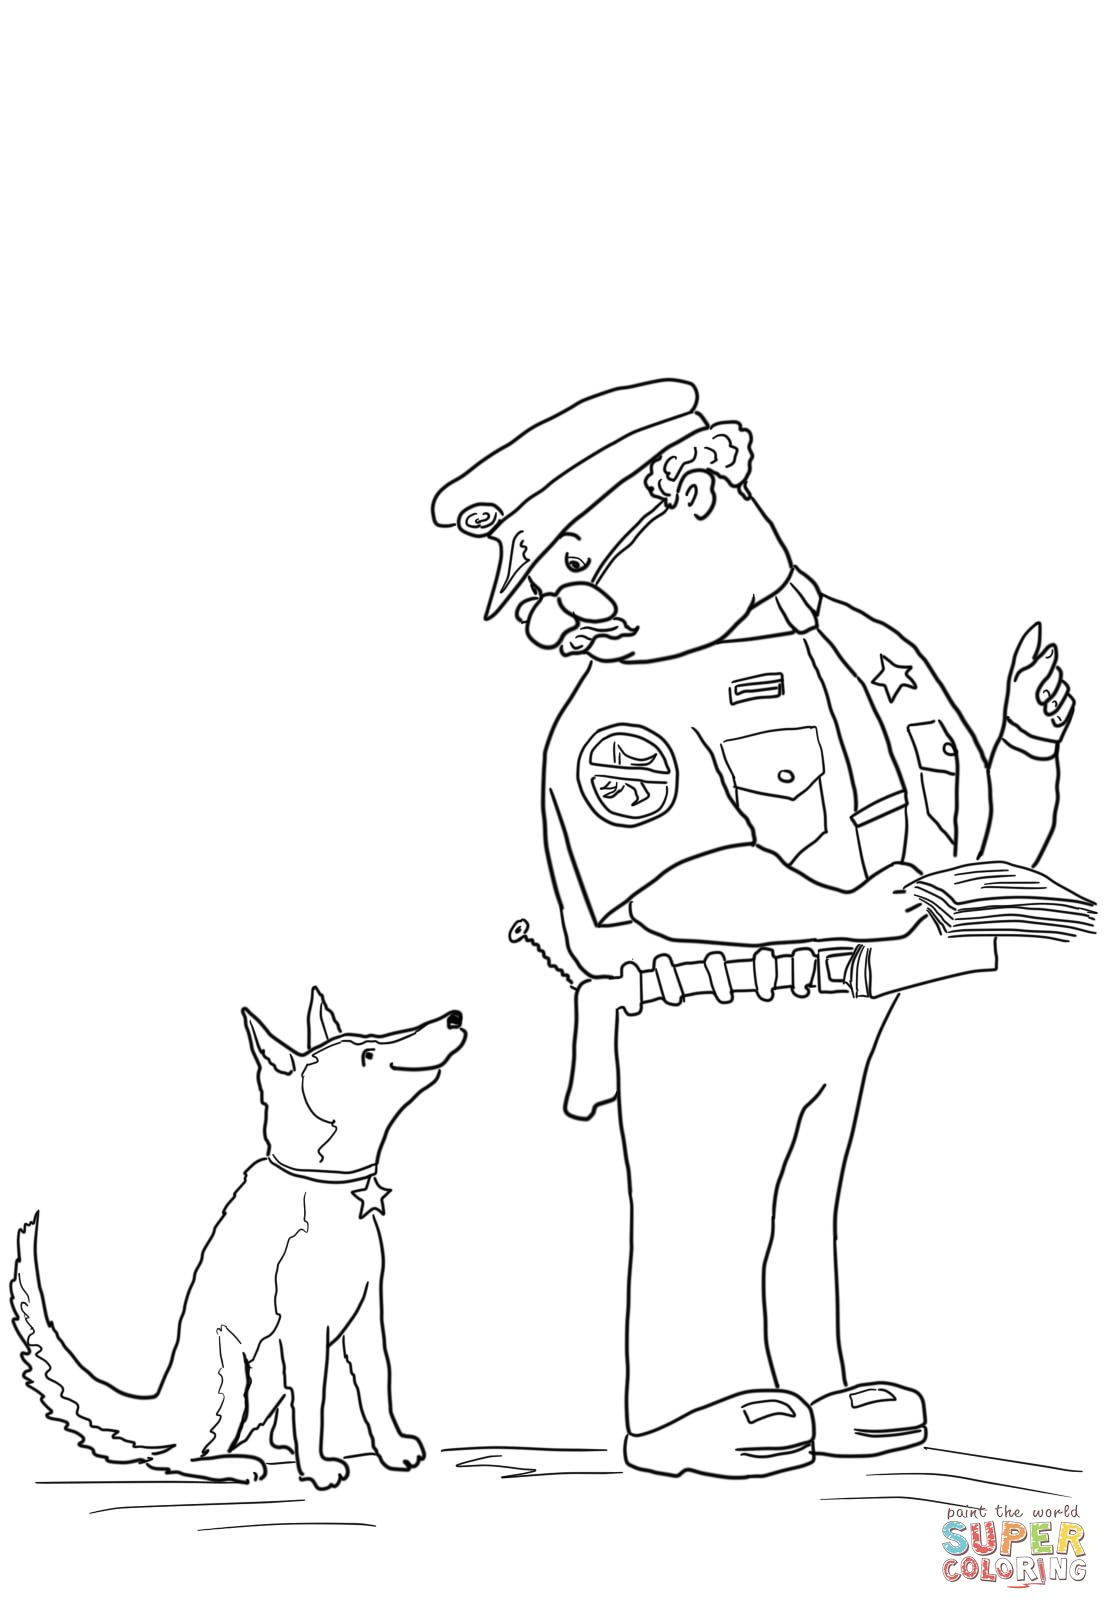 worksheet Officer Buckle And Gloria Worksheets officer buckle and gloria with paper work coloring page page